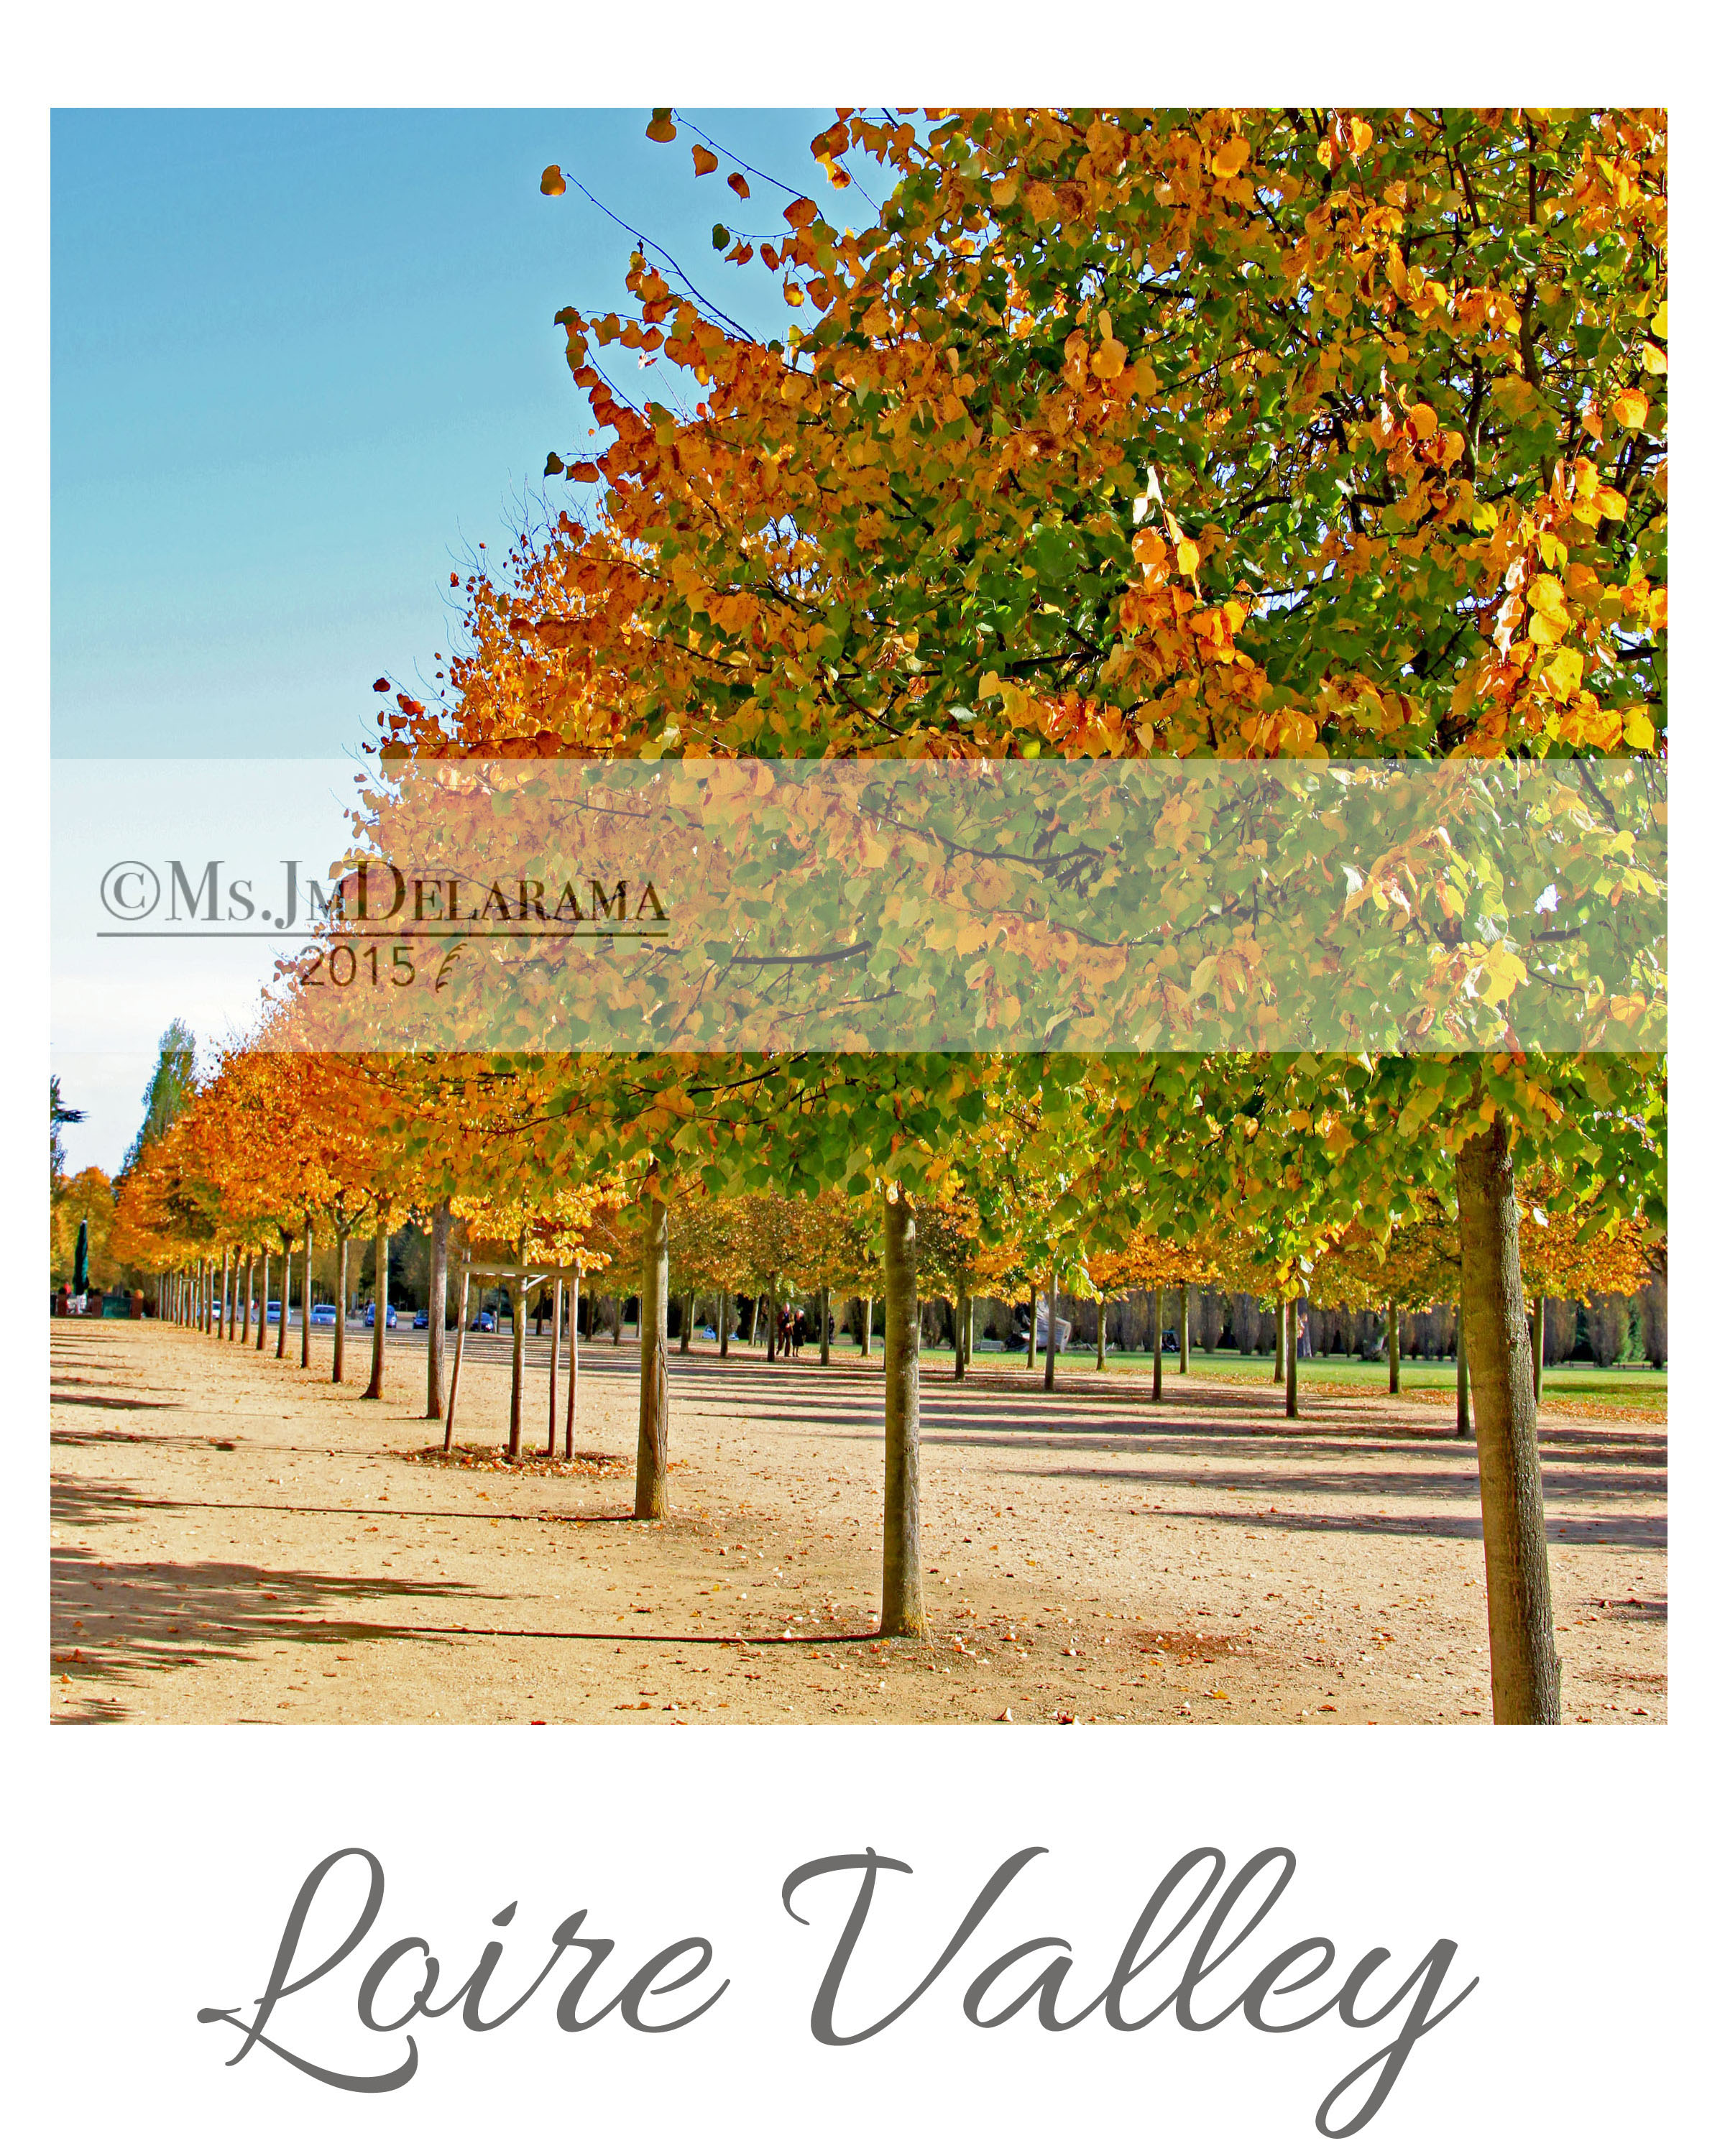 loire valley trees nature autumn seasons photography inspiration